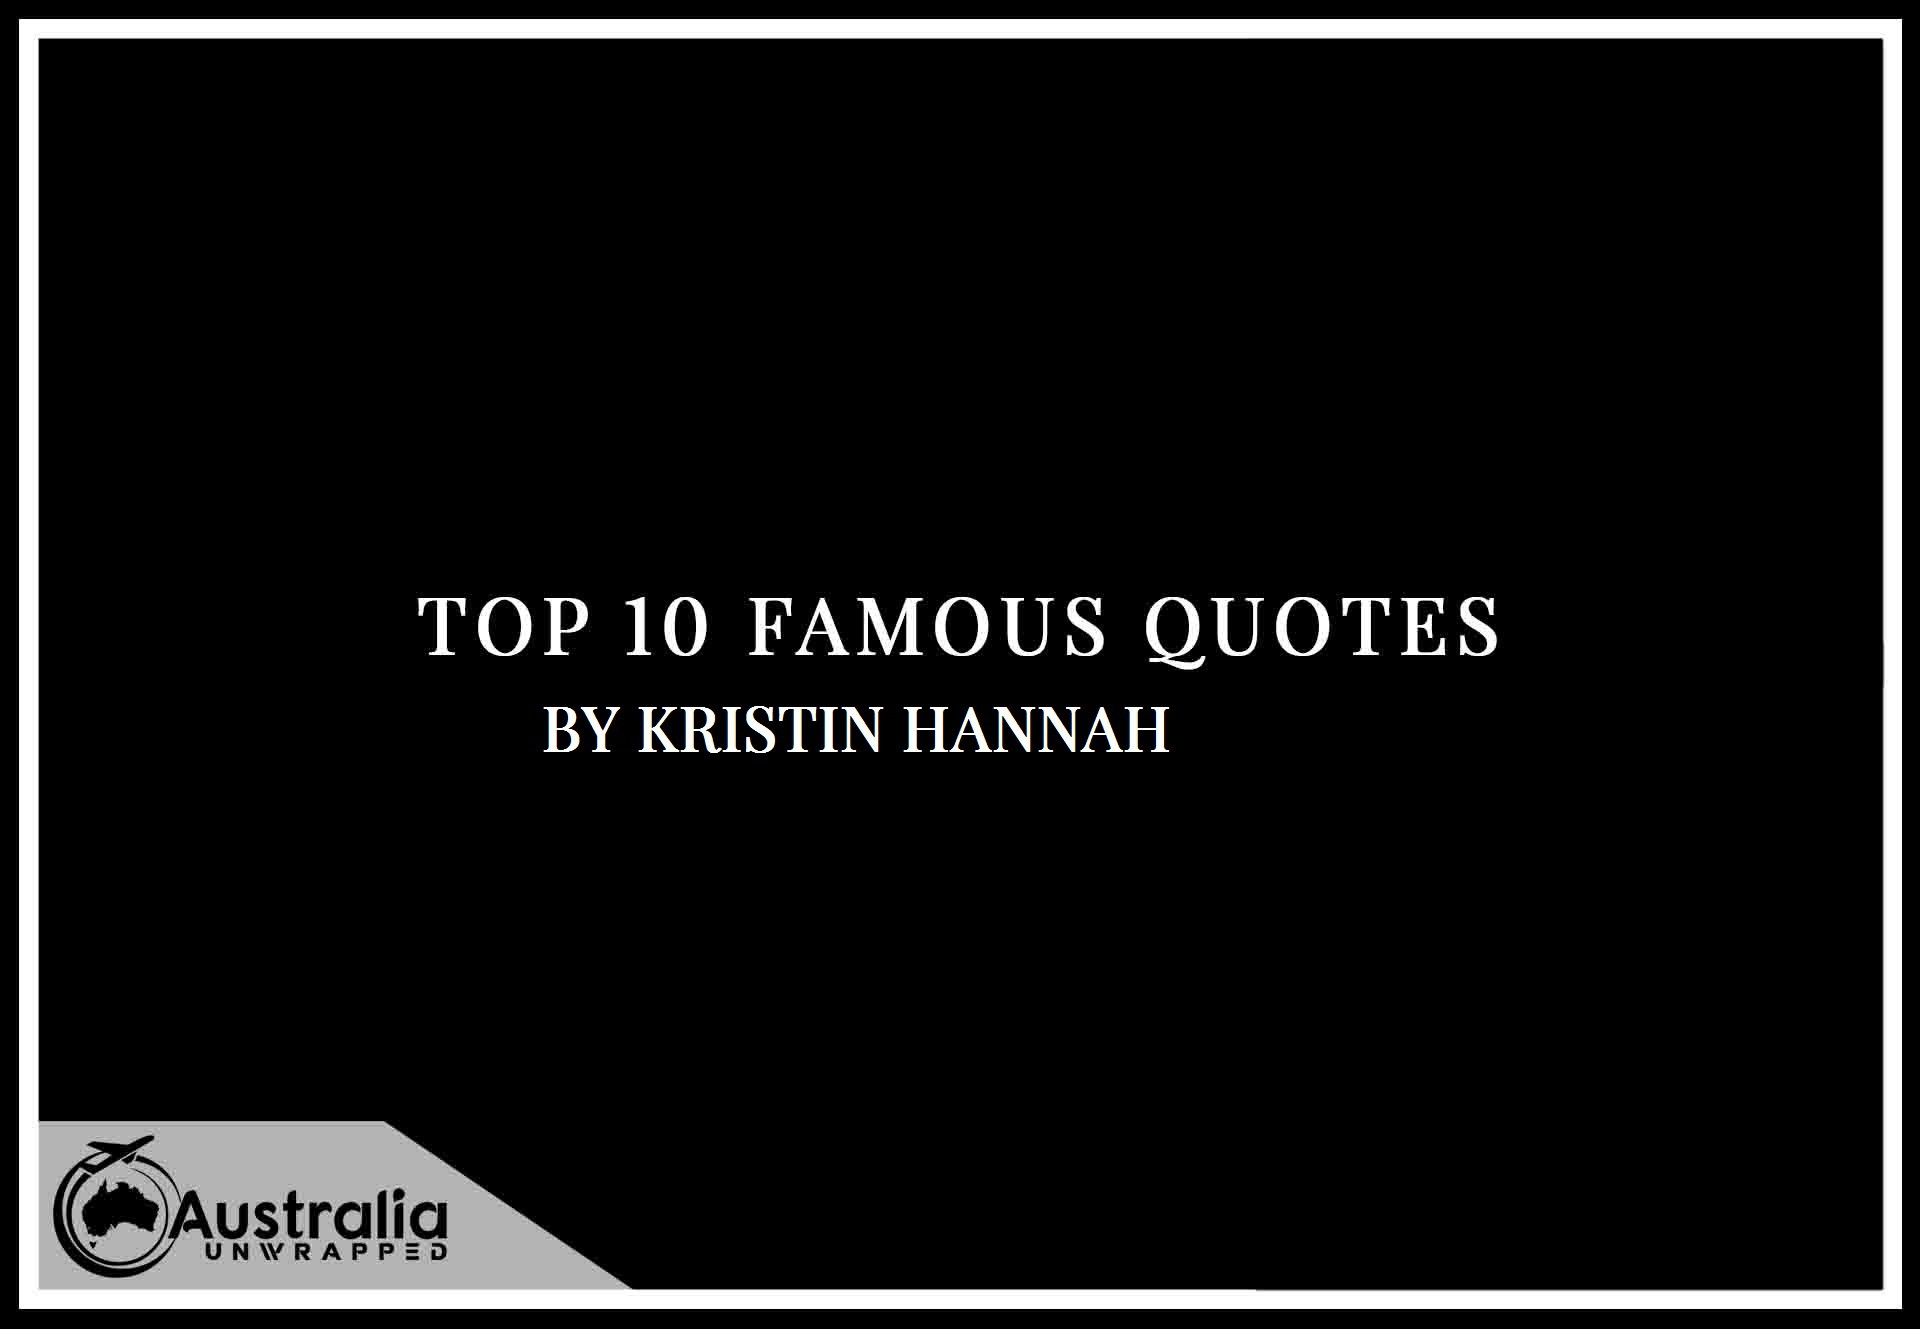 Kristin Hannah's Top 10 Popular and Famous Quotes